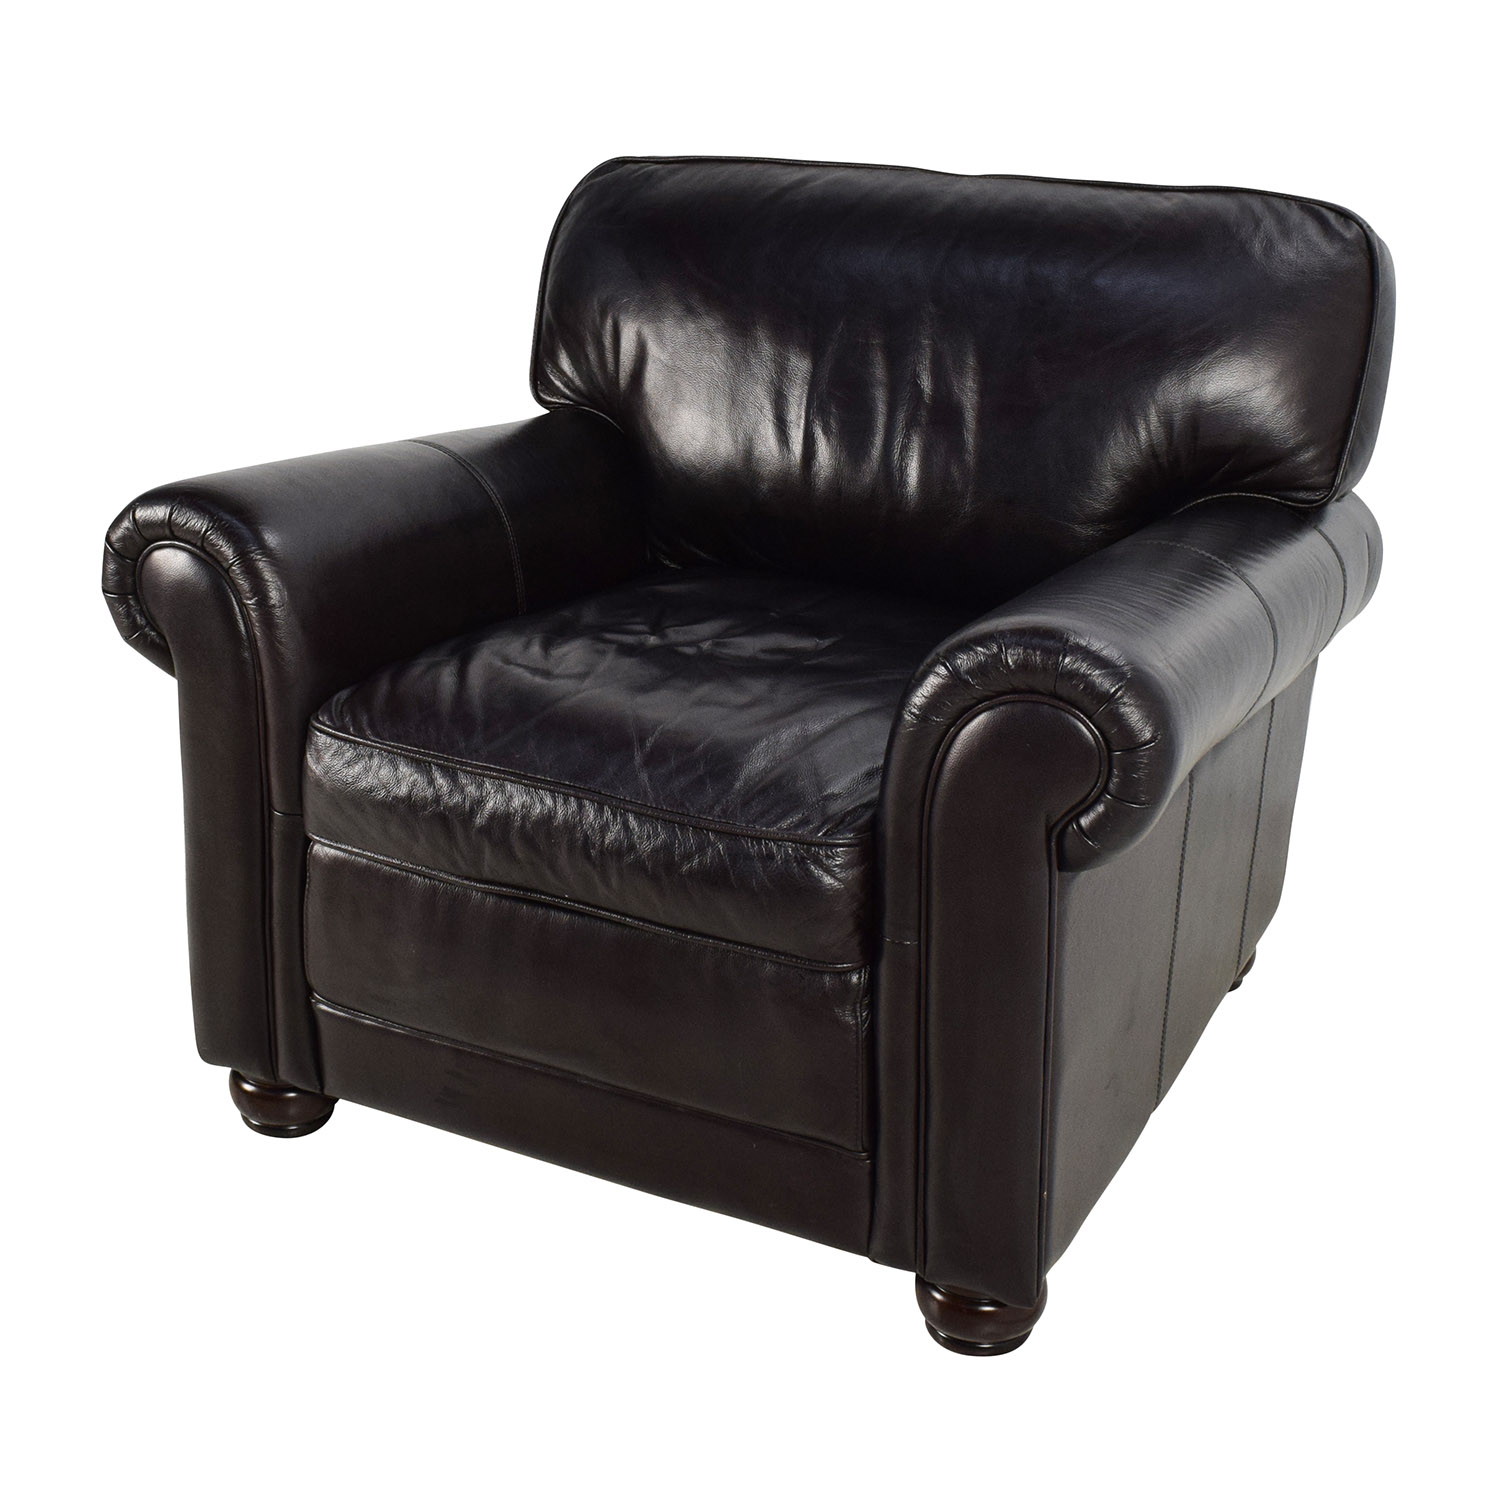 74 Off Bob S Discount Furniture Bob S Furniture Leather